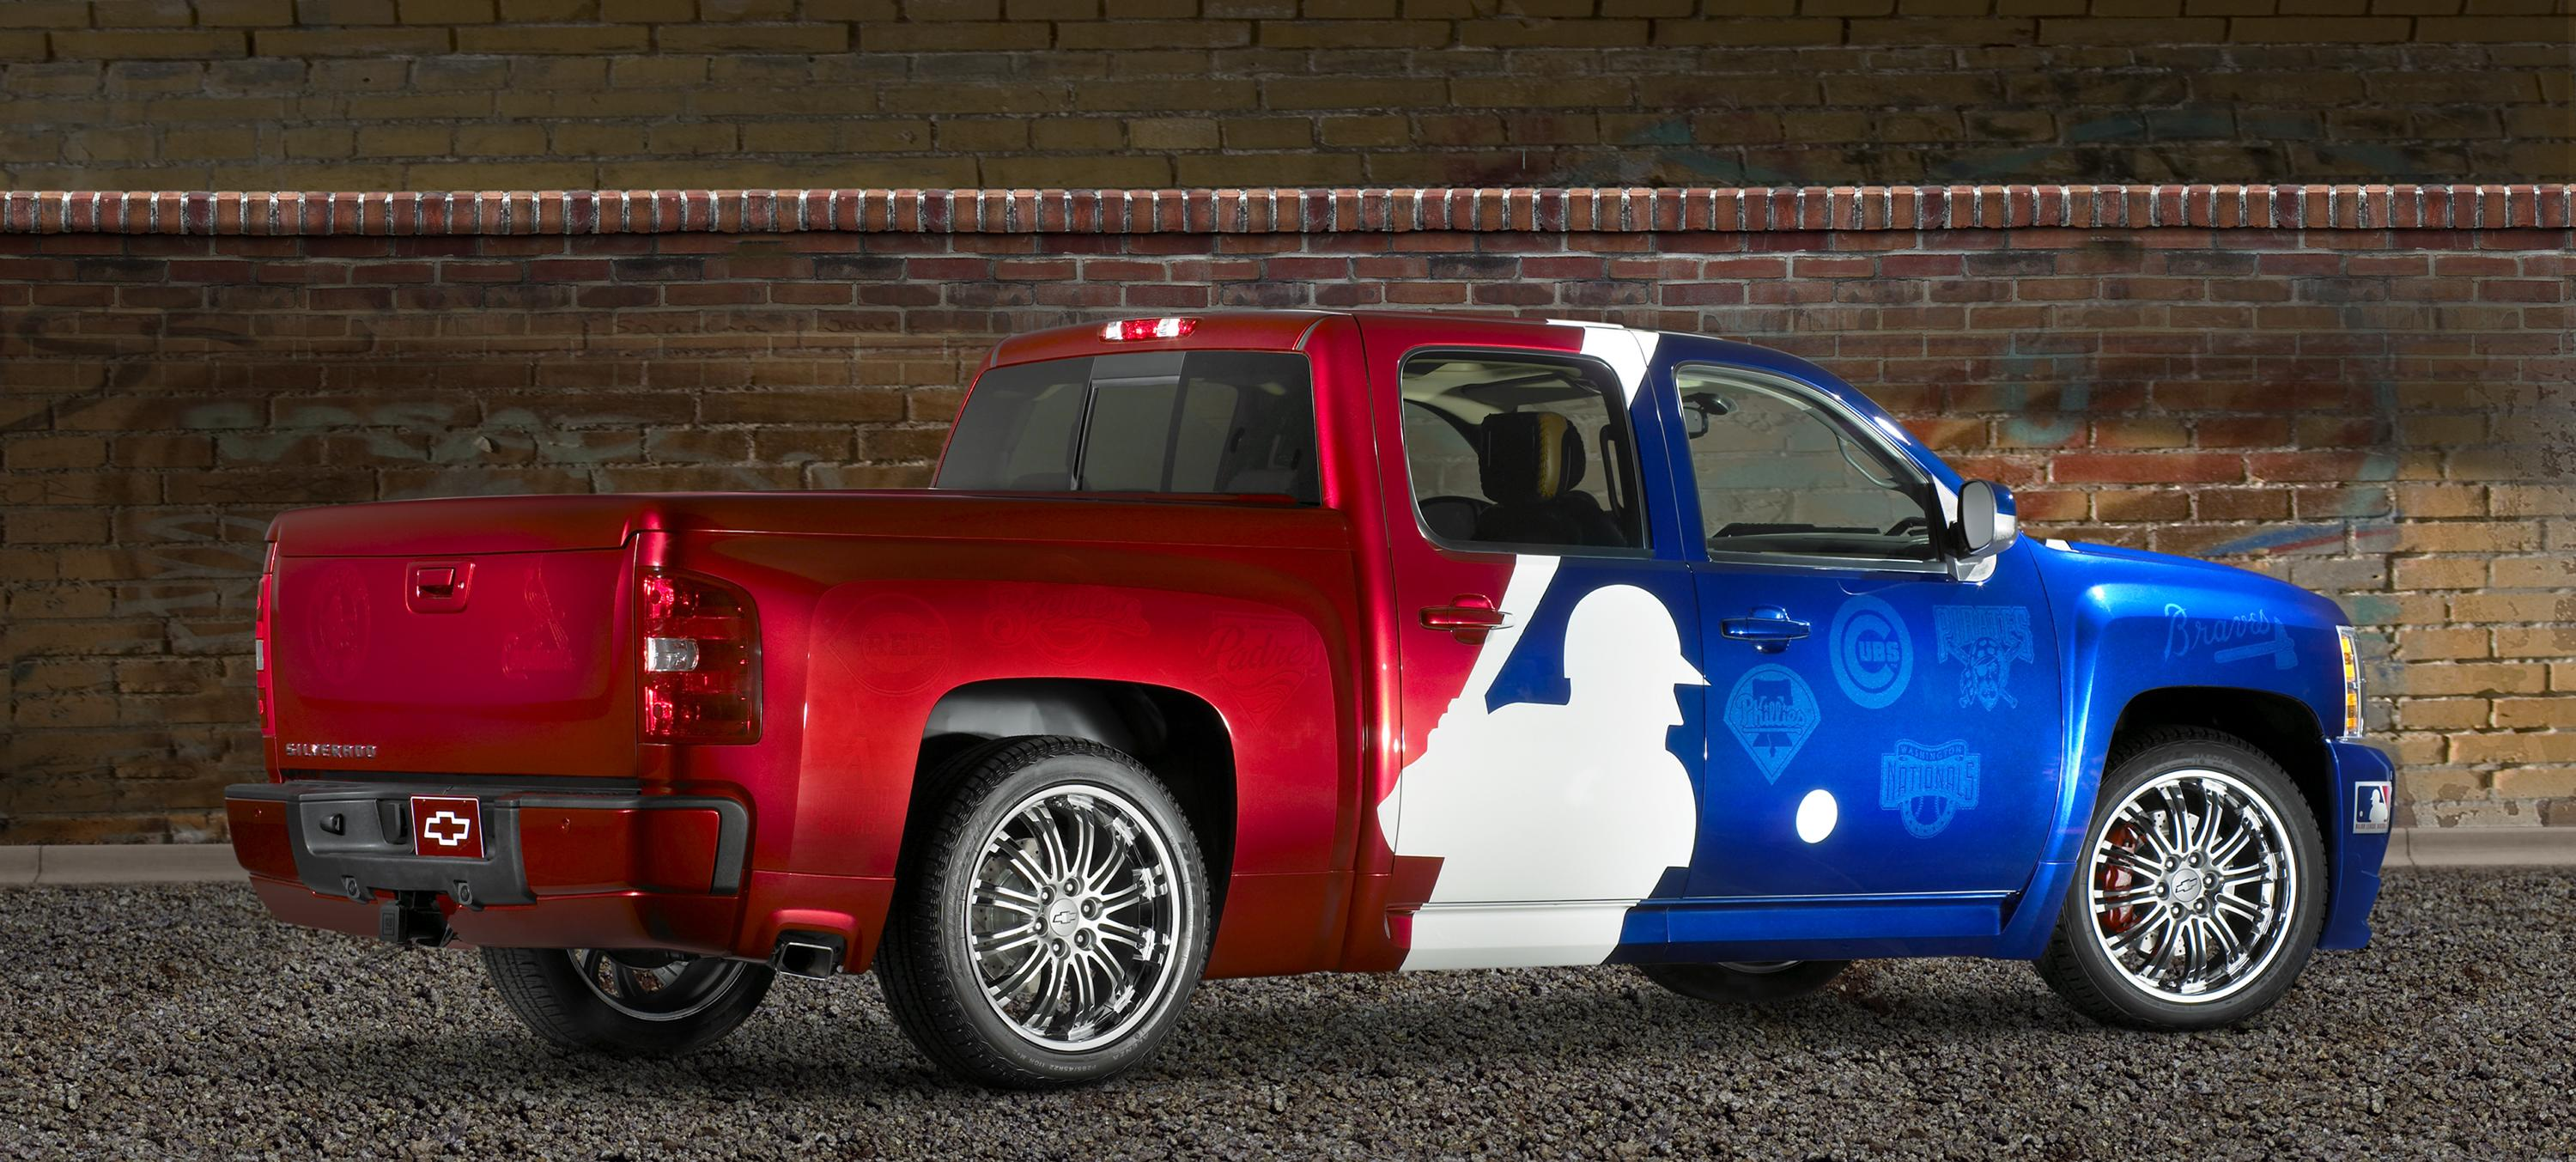 2007 Chevrolet Major League Baseball Silverado Review